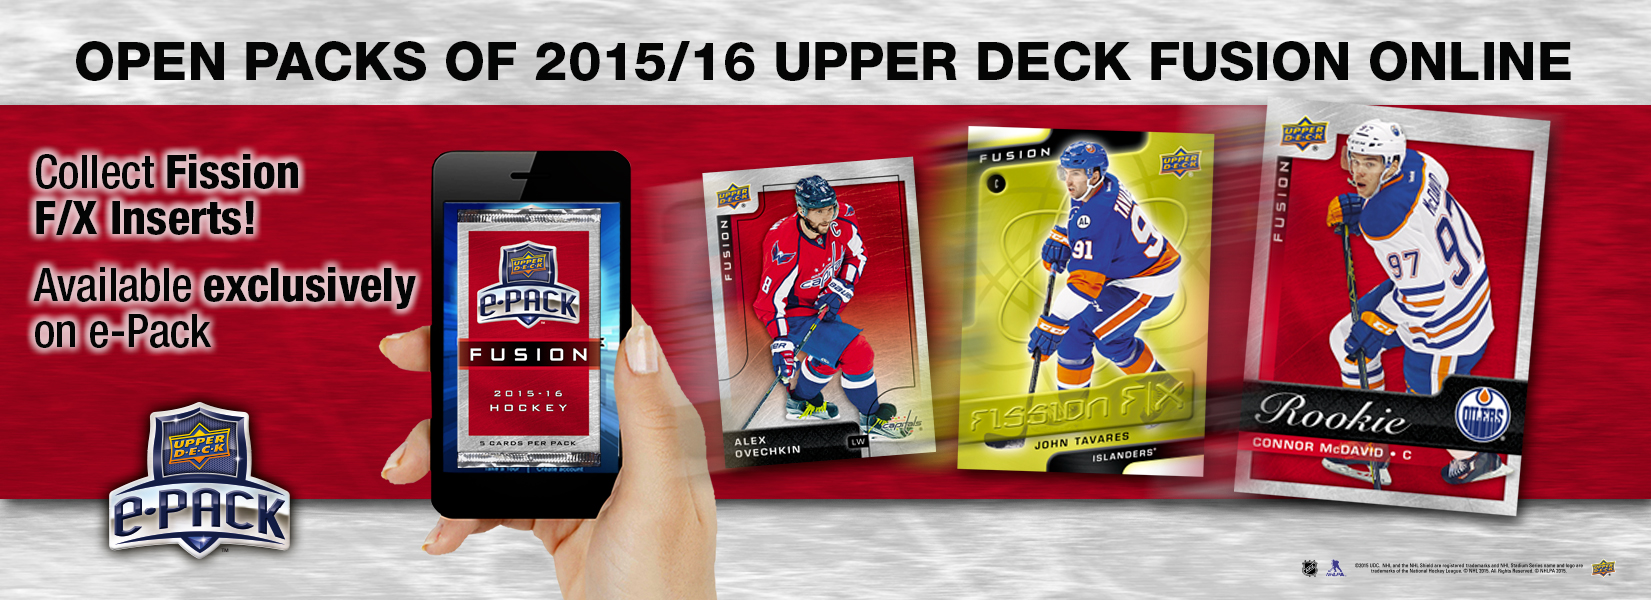 Open packs of 2015/16 Upper Deck Fusion Online